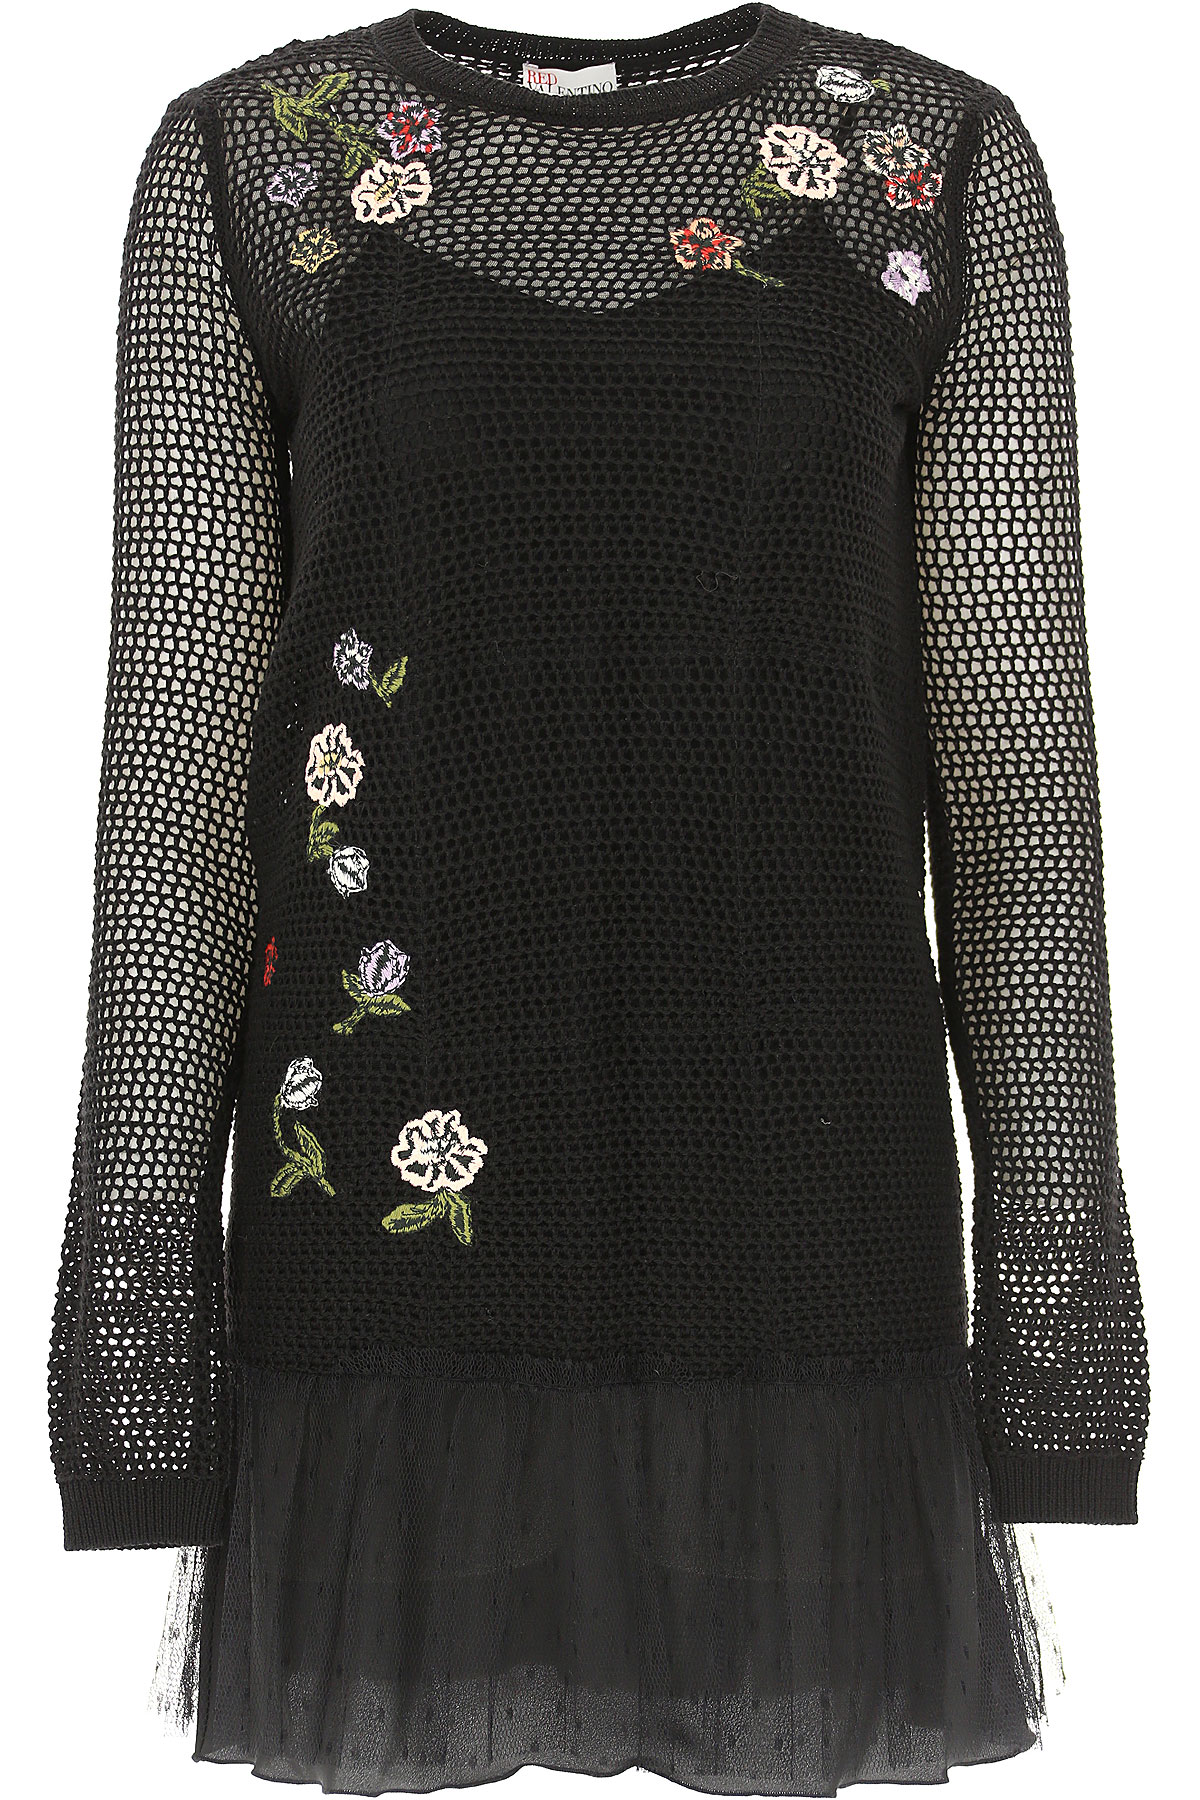 RED Valentino Dress for Women, Evening Cocktail Party On Sale in Outlet, Black, Virgin wool, 2019, 2 6